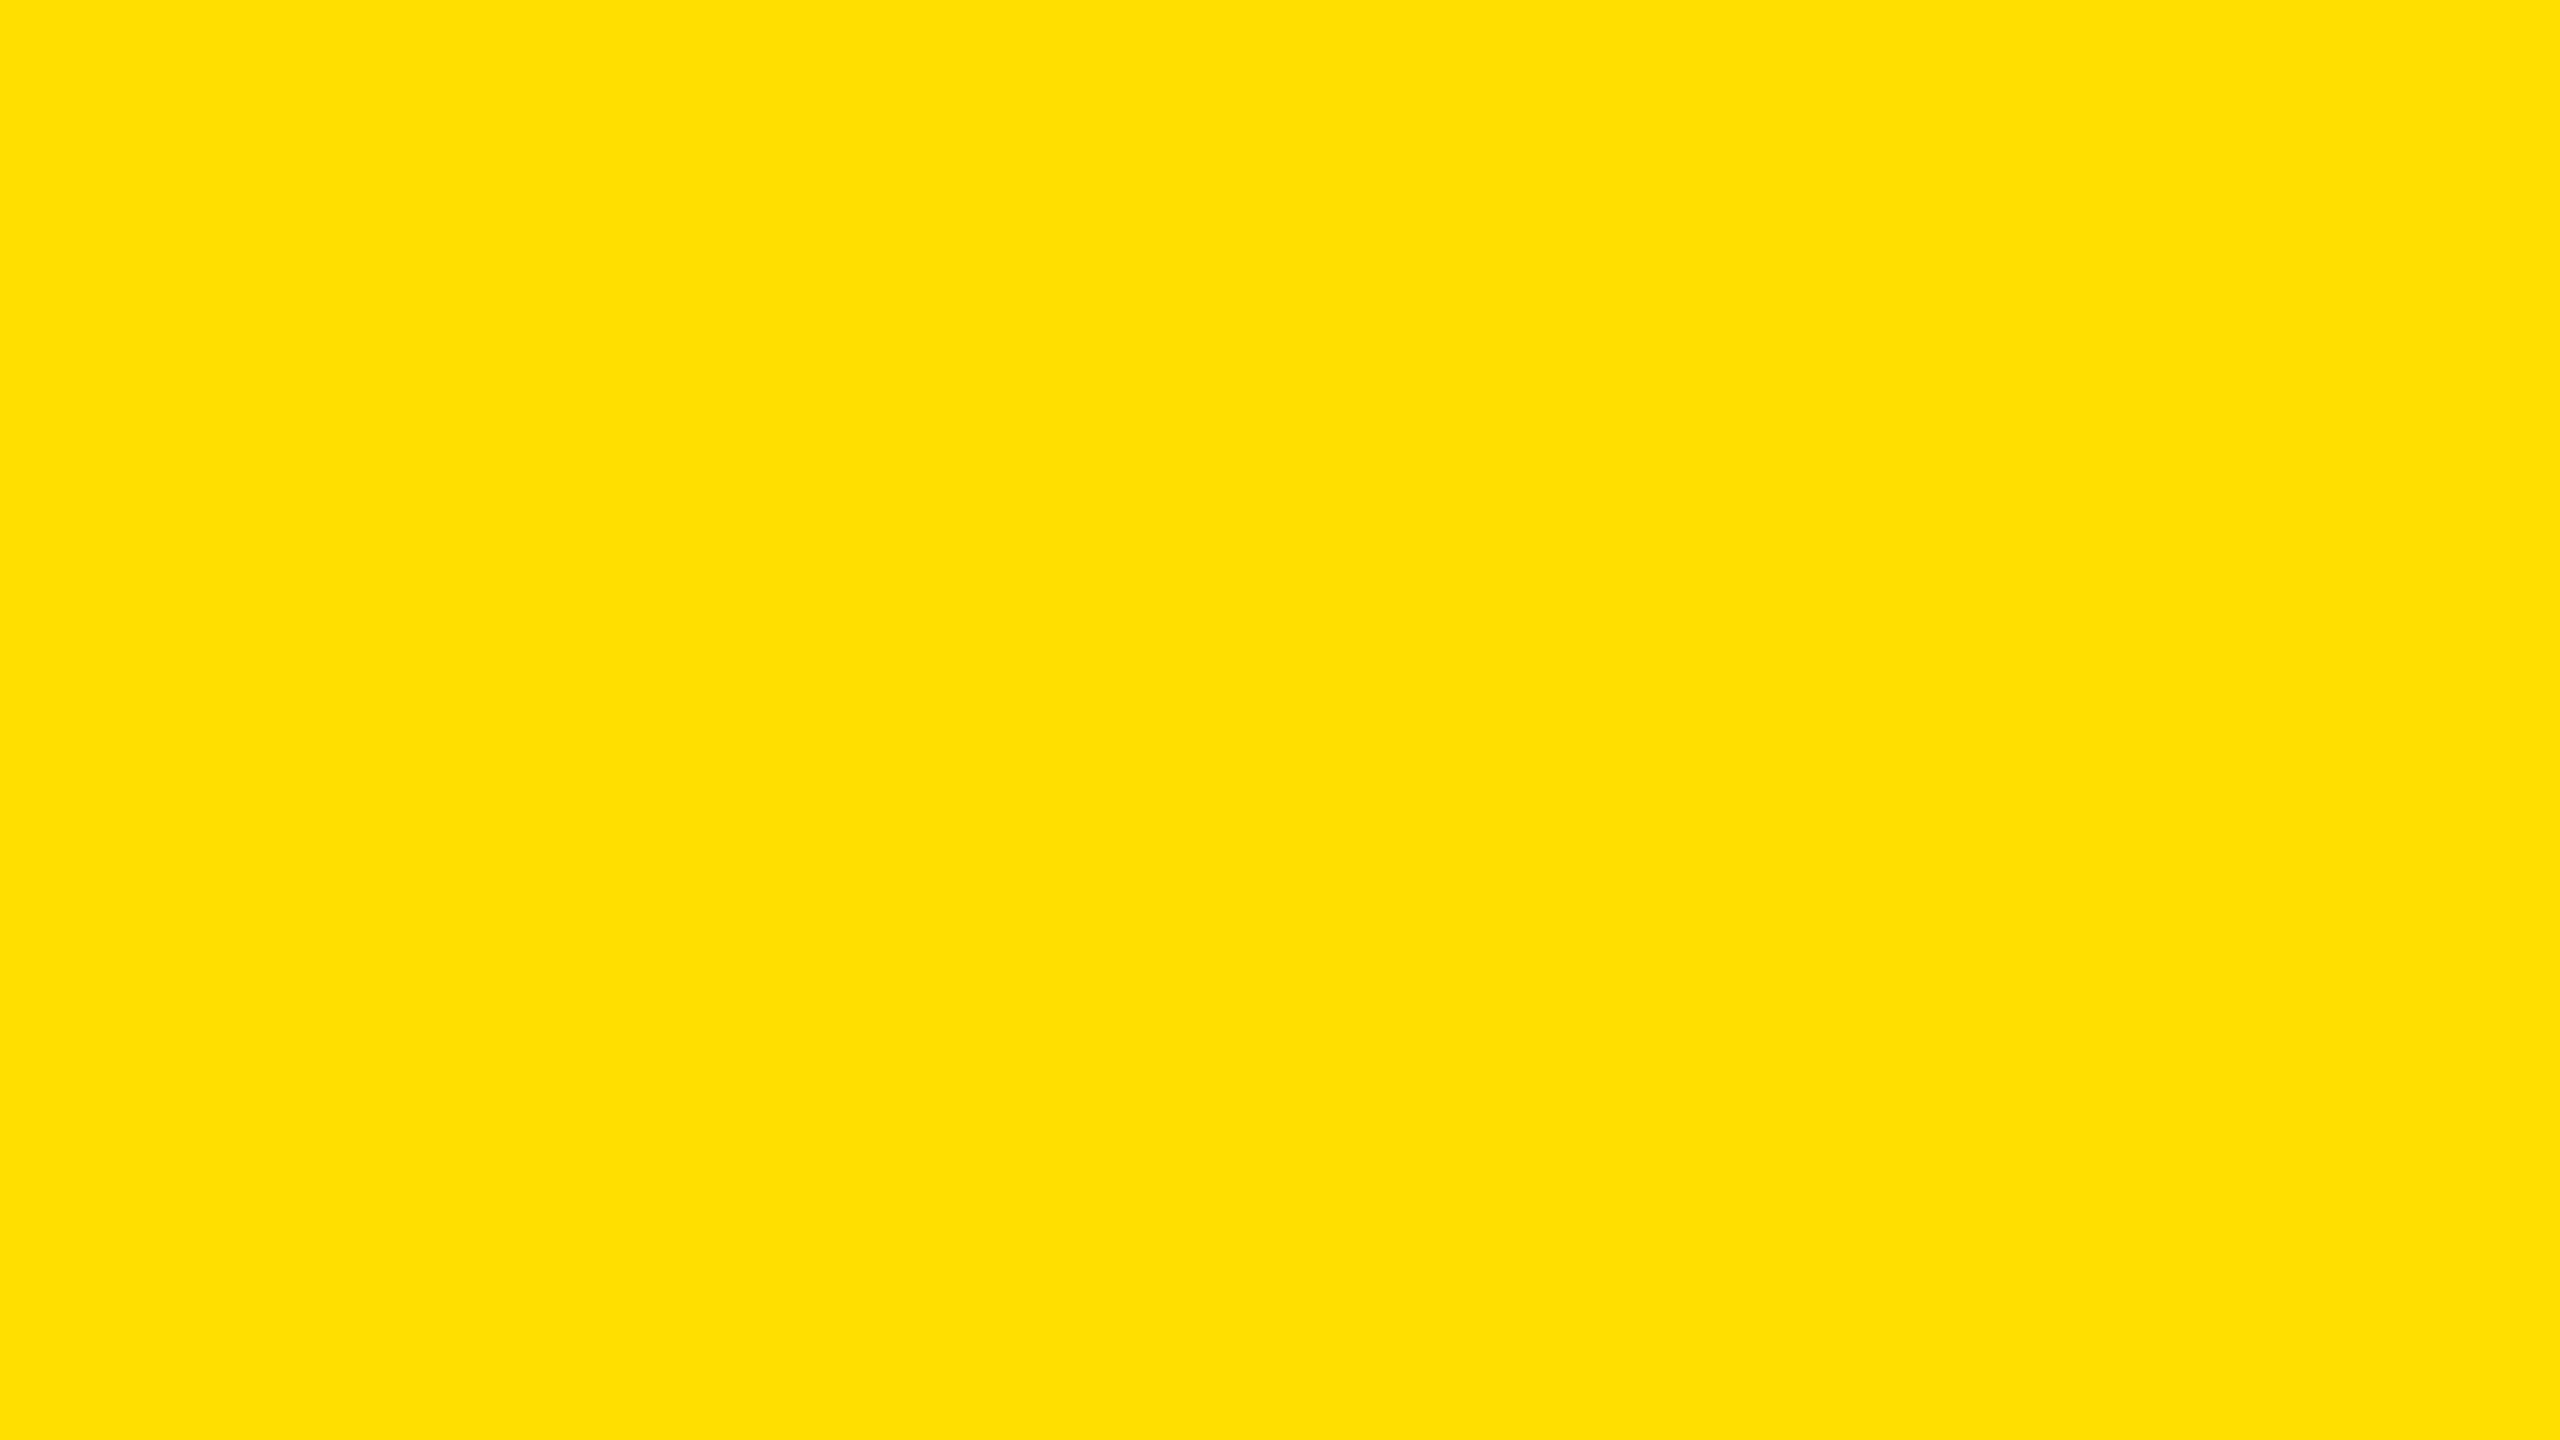 2560x1440 Golden Yellow Solid Color Background